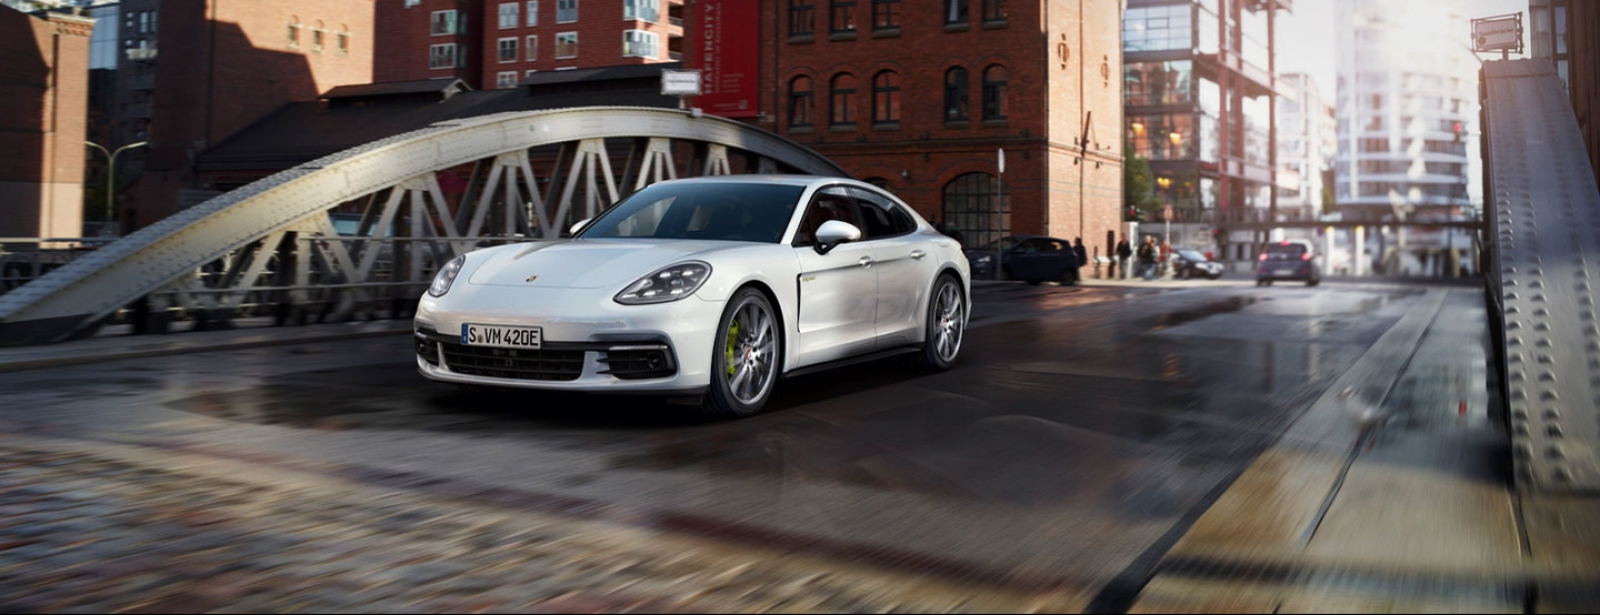 Porsche - The new Panamera 4 E-Hybrid - Courage changes everything.